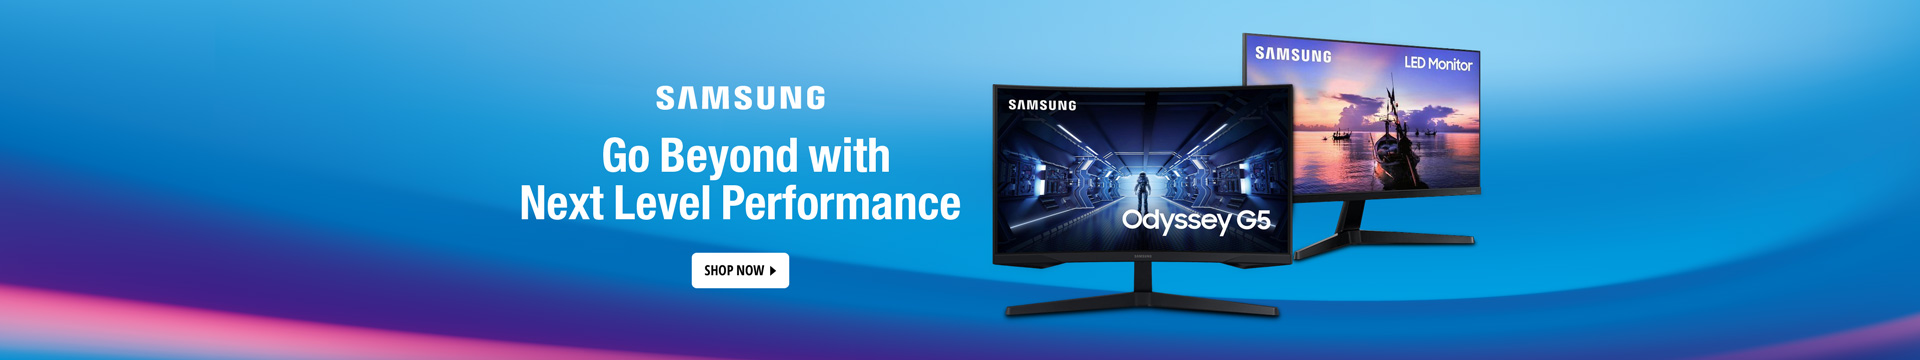 SAMSUNG Go Beyond with Next Level Performance